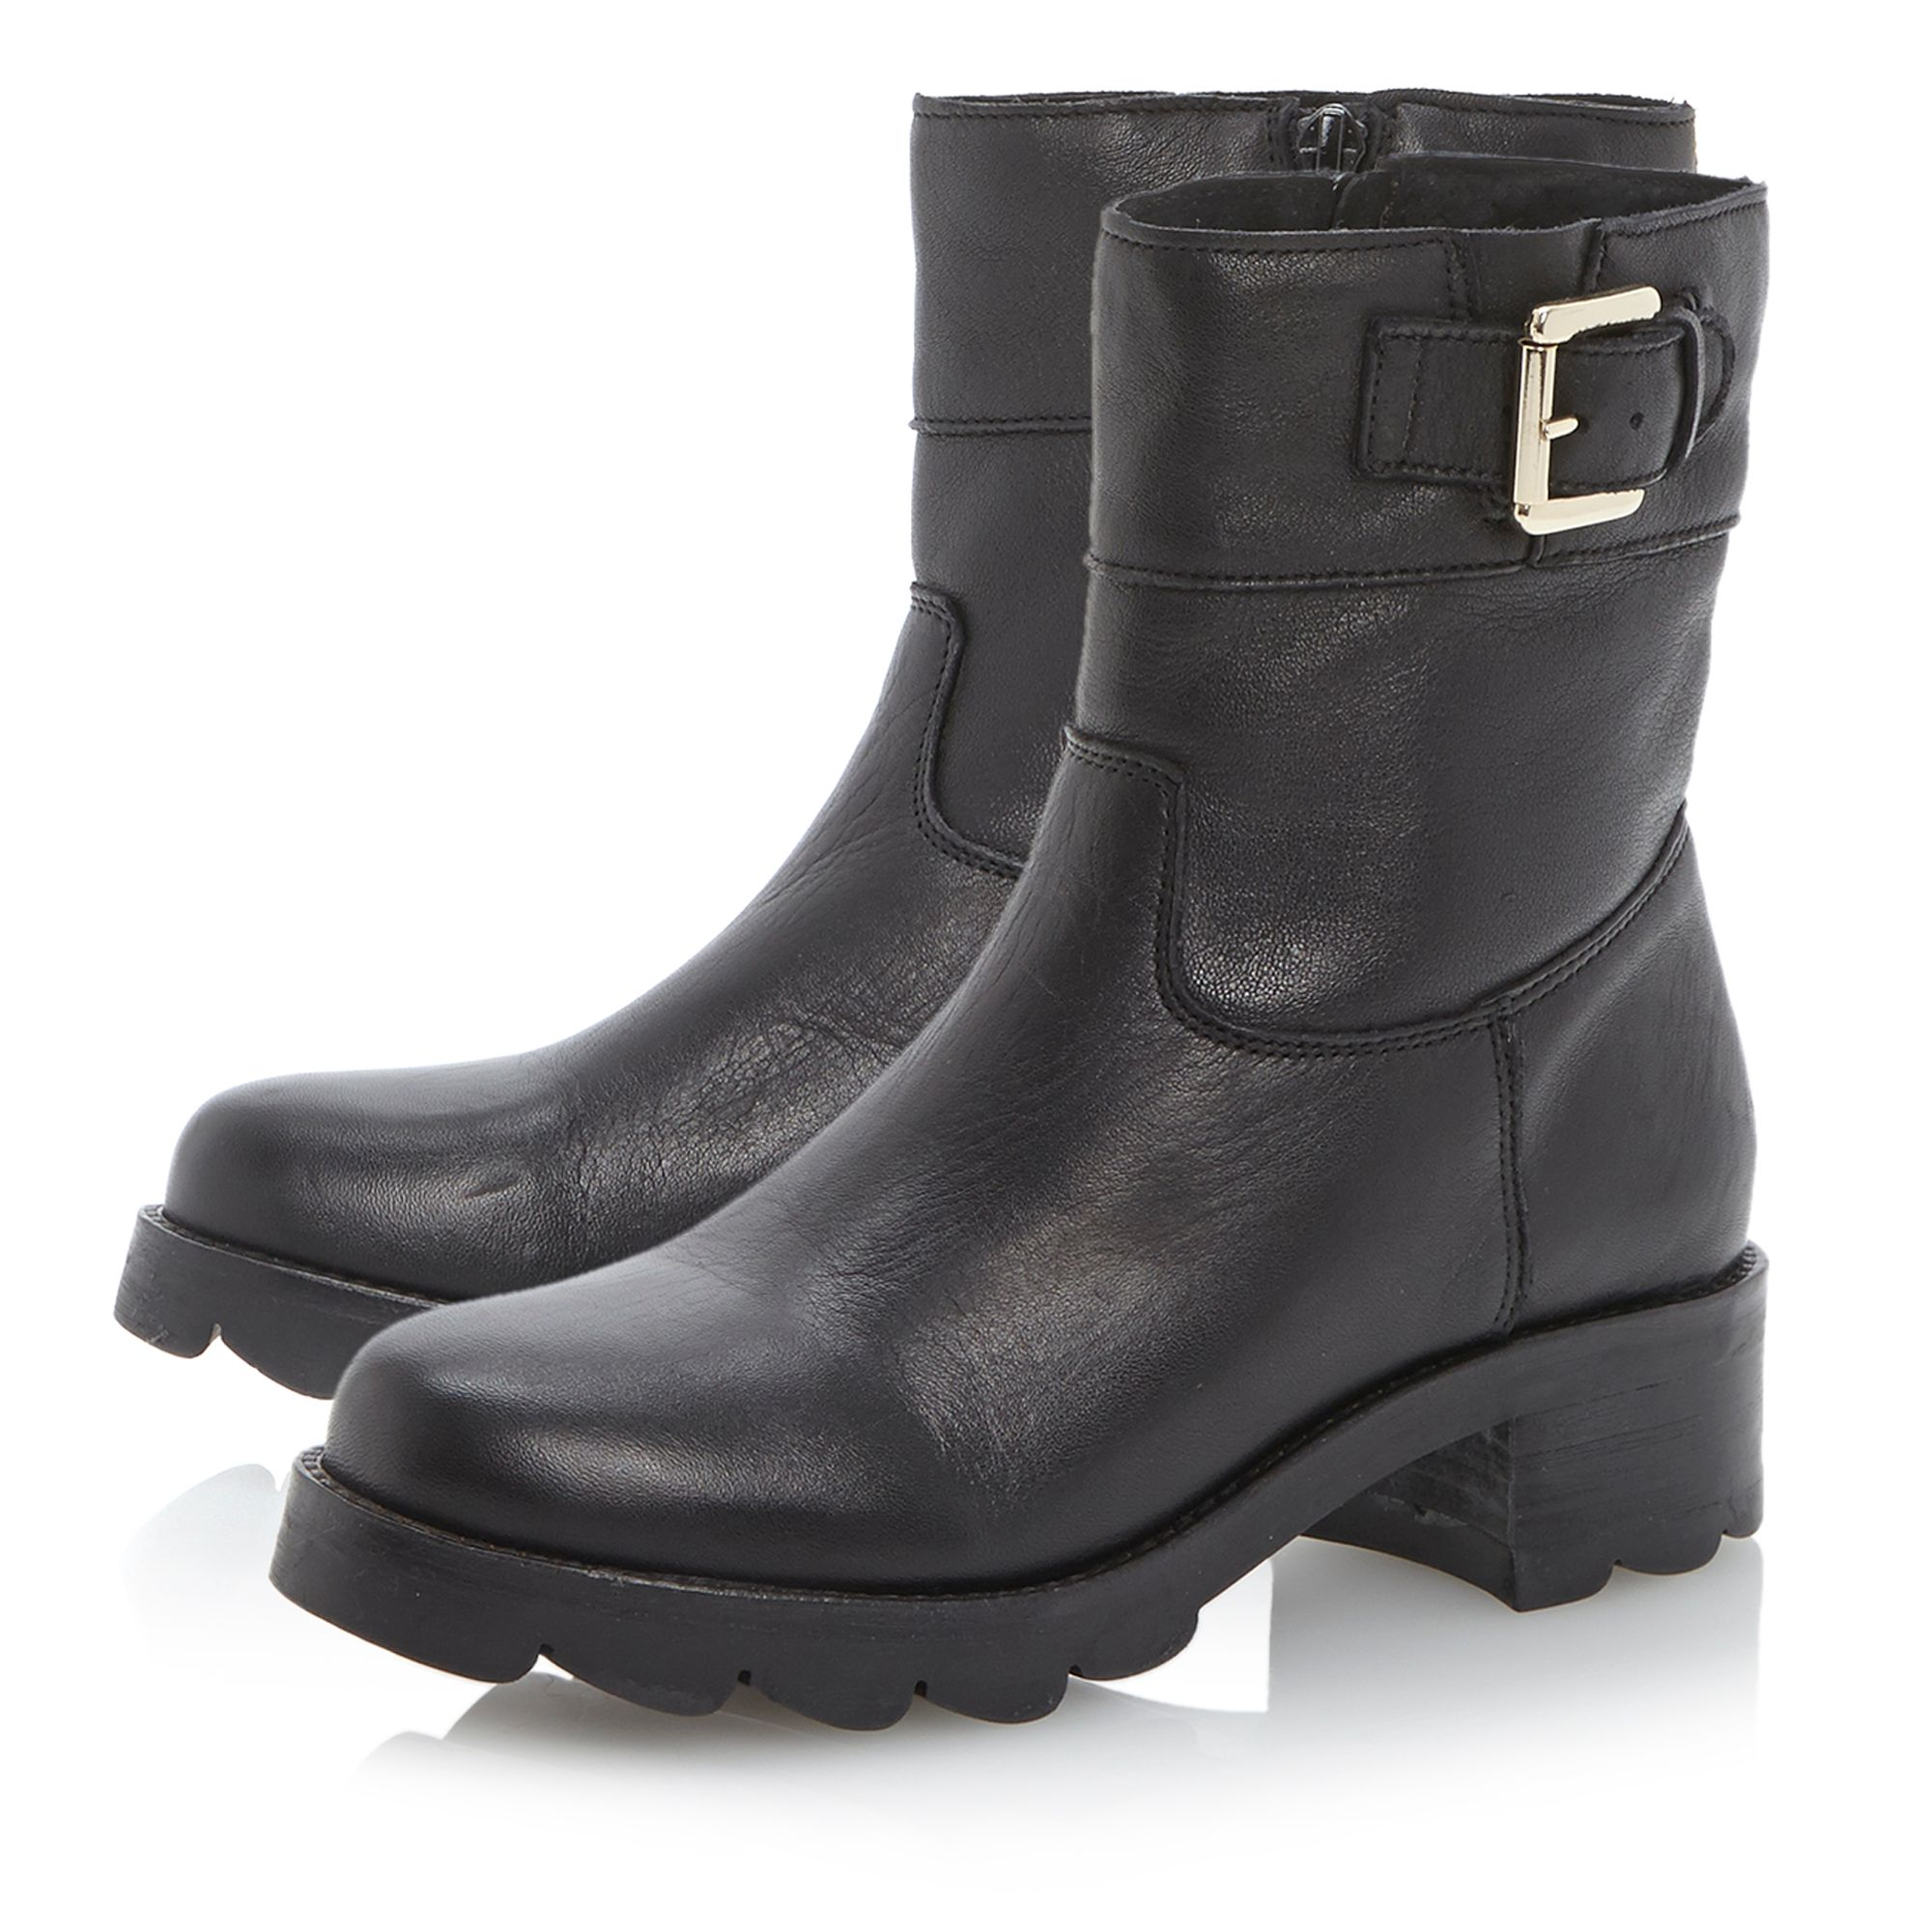 Reem heavy cleated sole biker boots